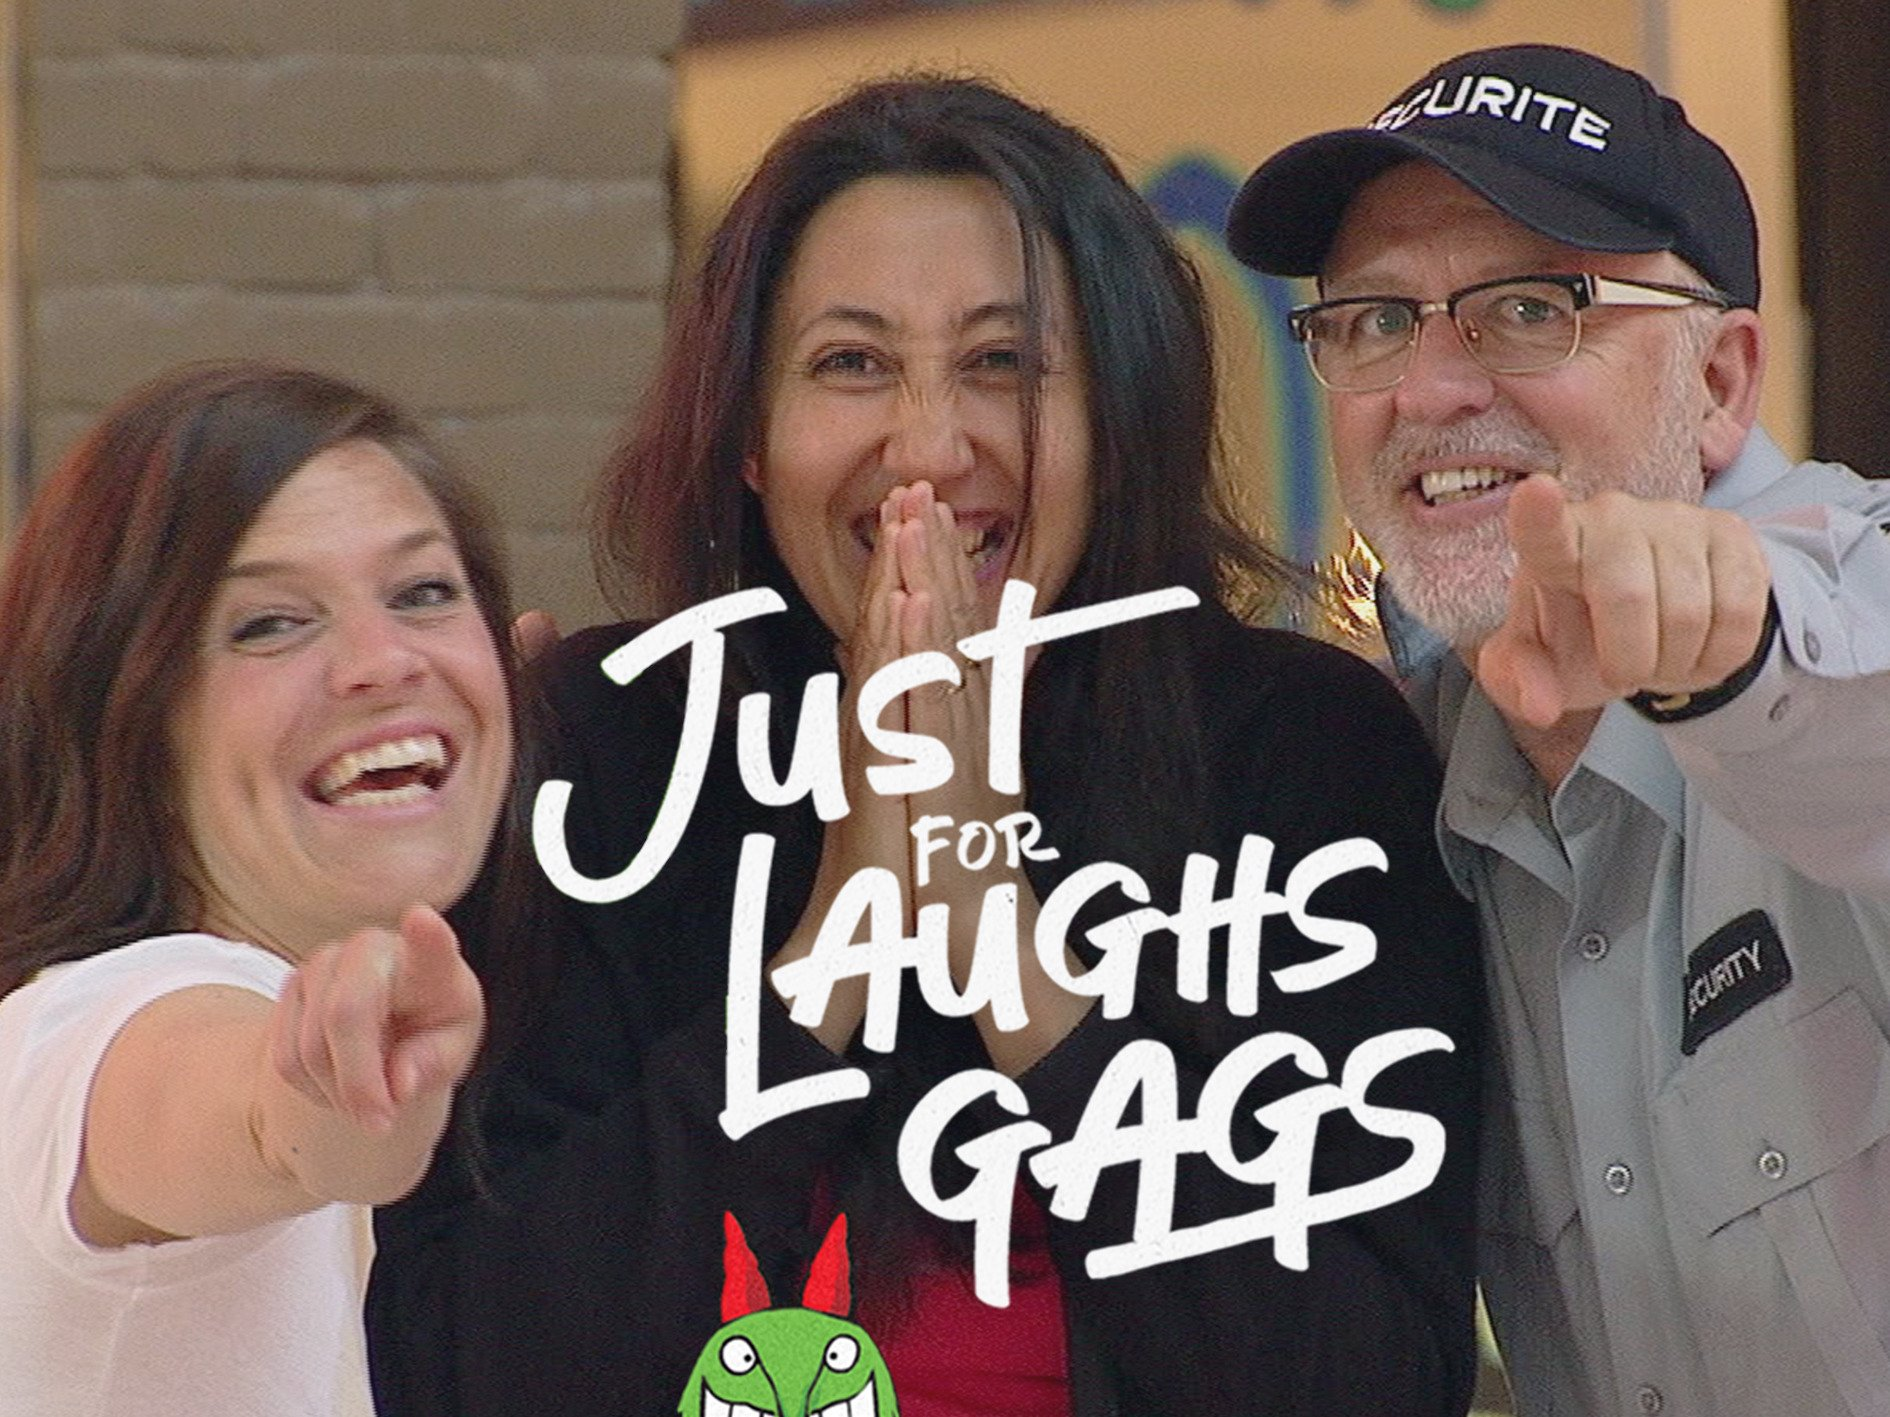 gags just for laughs videos